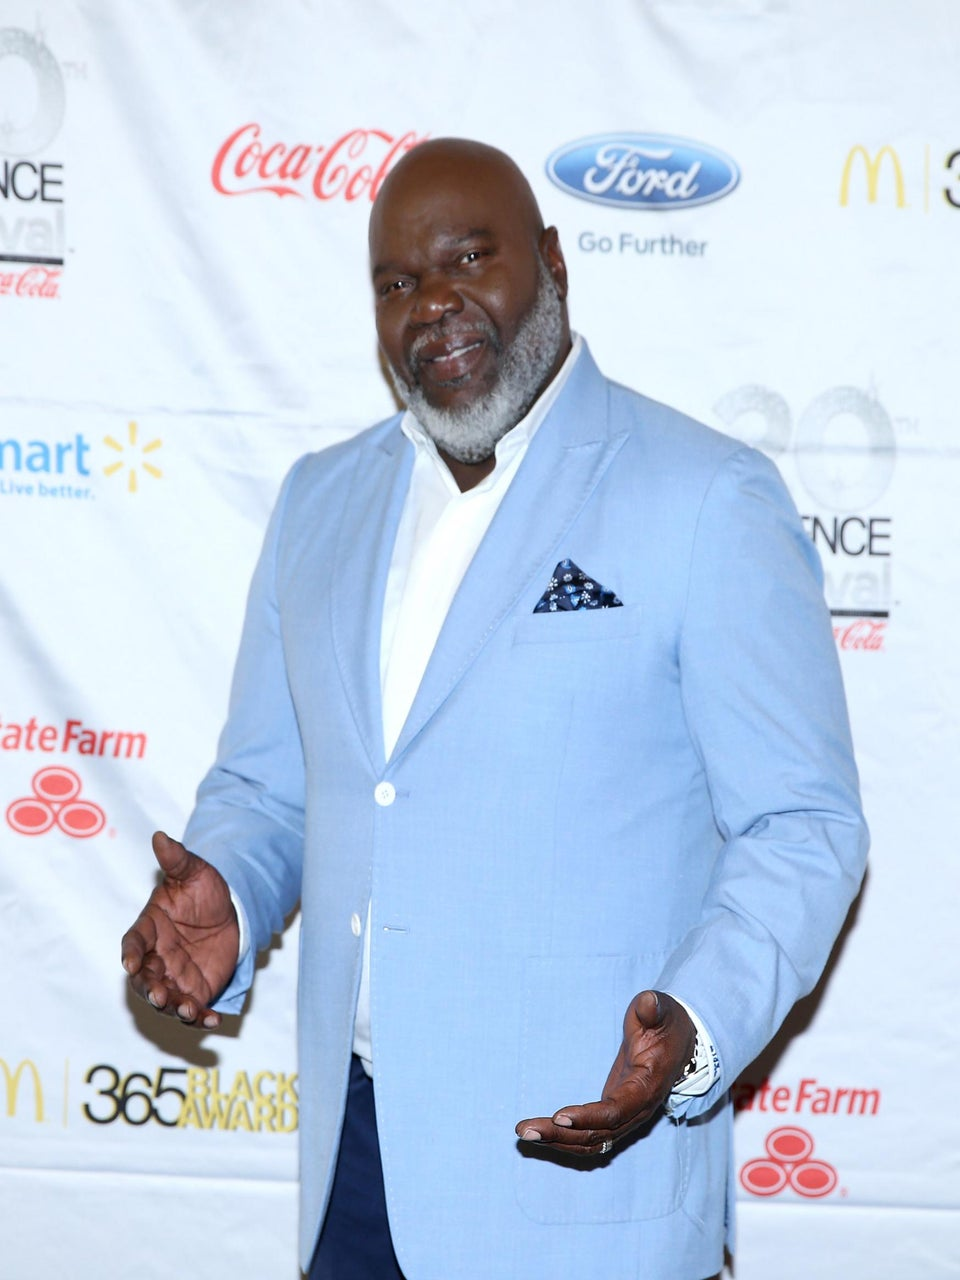 Bishop T.D. Jakes Defends Wearing Ripped Jeans in Church